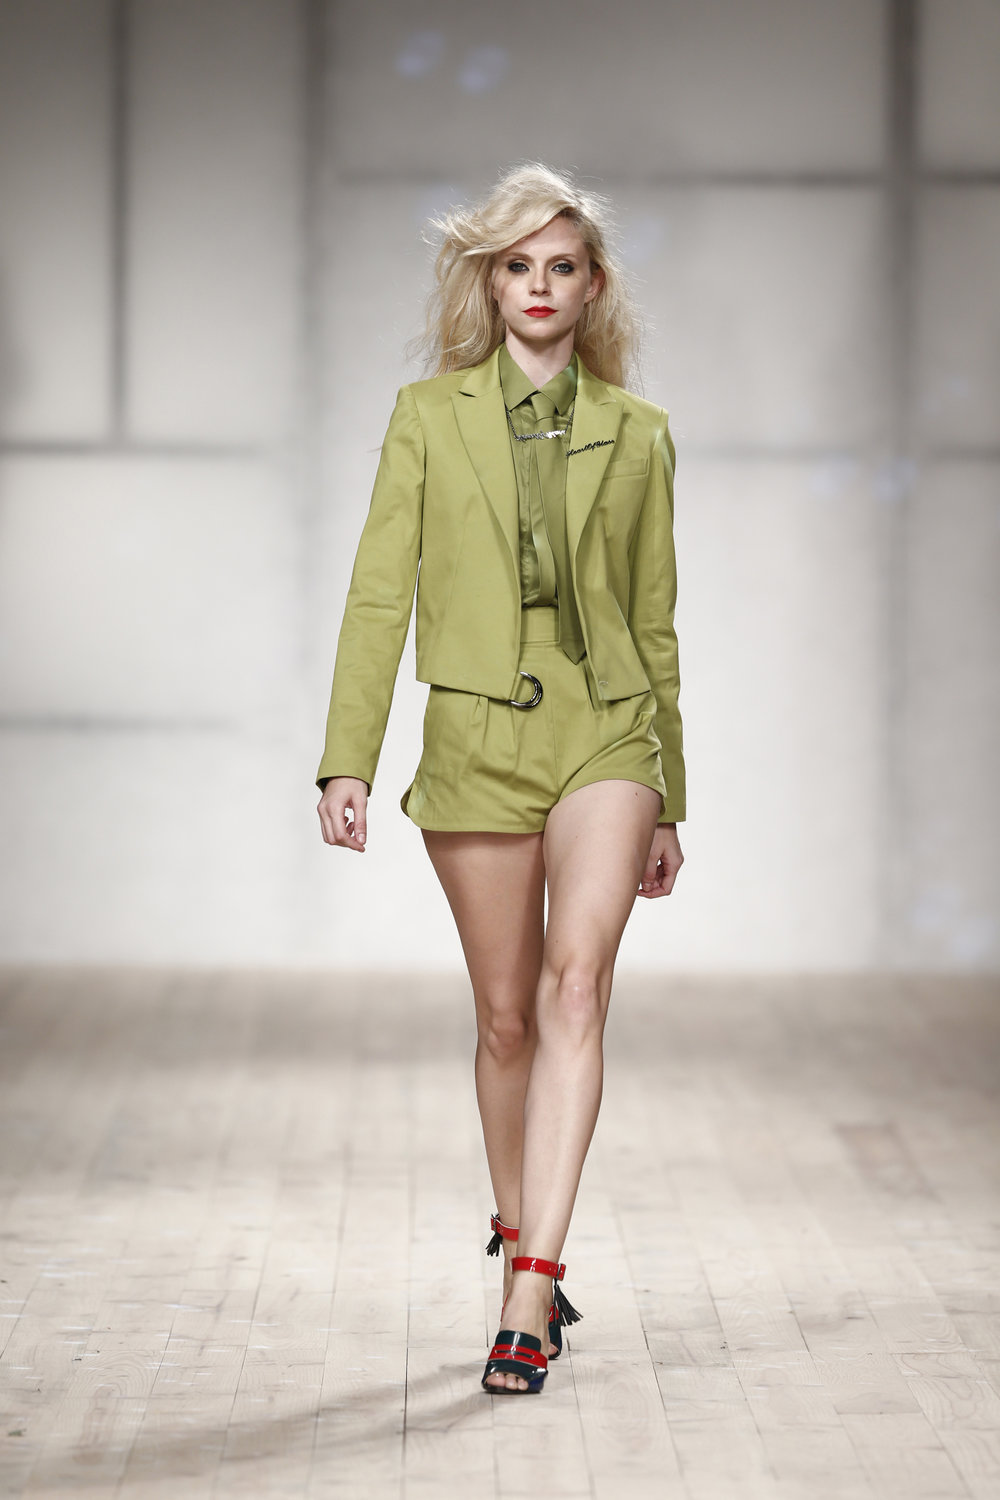 green Blazer  One available size 36 Original Price 495€ | Discount Price 247€ Ref. LCss17s44